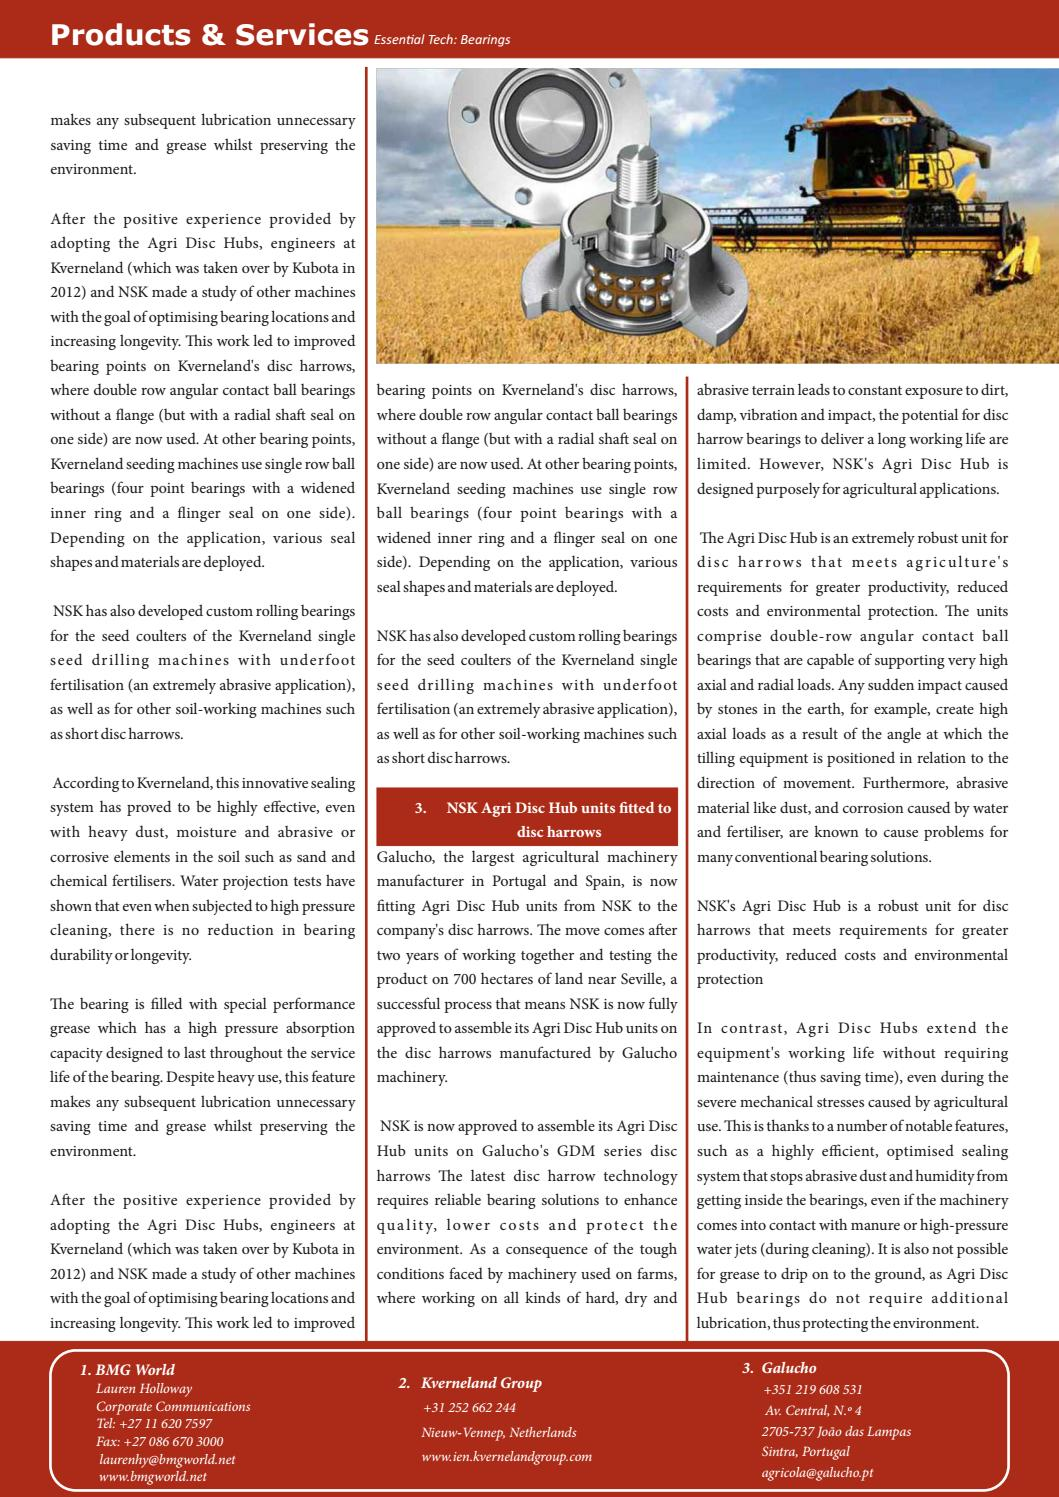 Farmers Review Africa Sep/Oct 2017 by Mailing Times Media